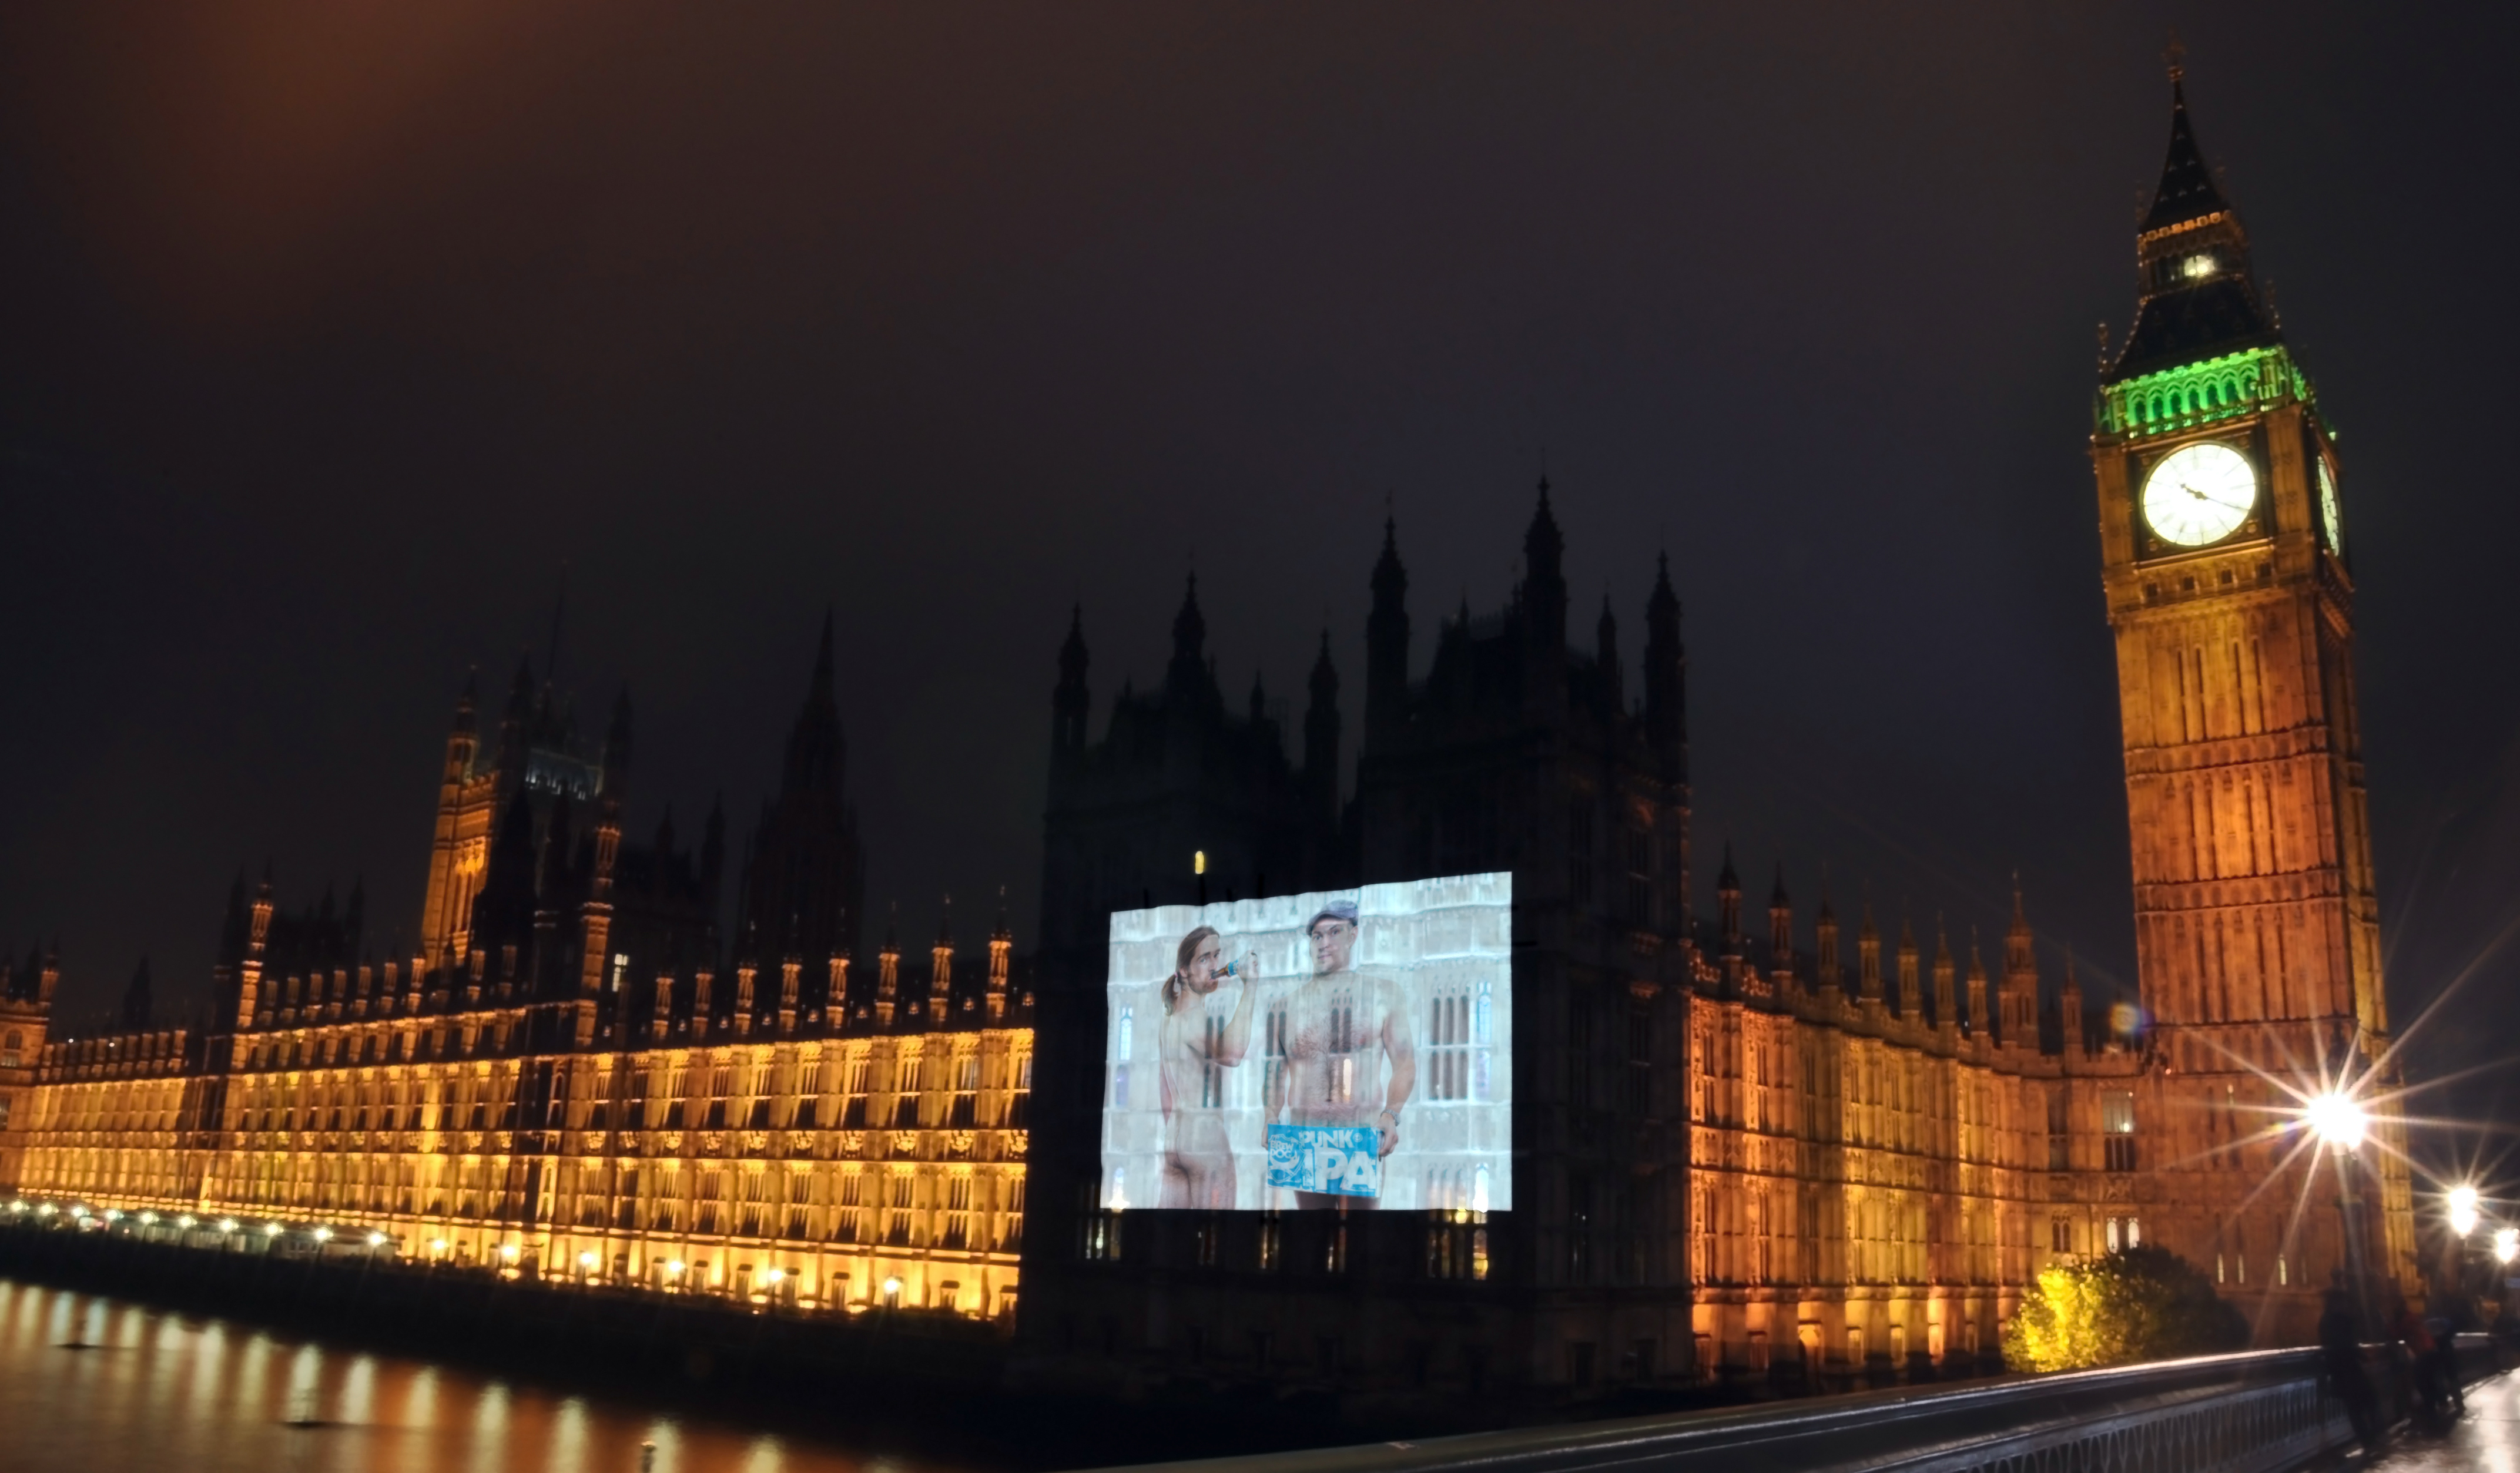 Naked 60ft image of BrewDog founders projected onto Houses of Parliament, parodying Gail Porter